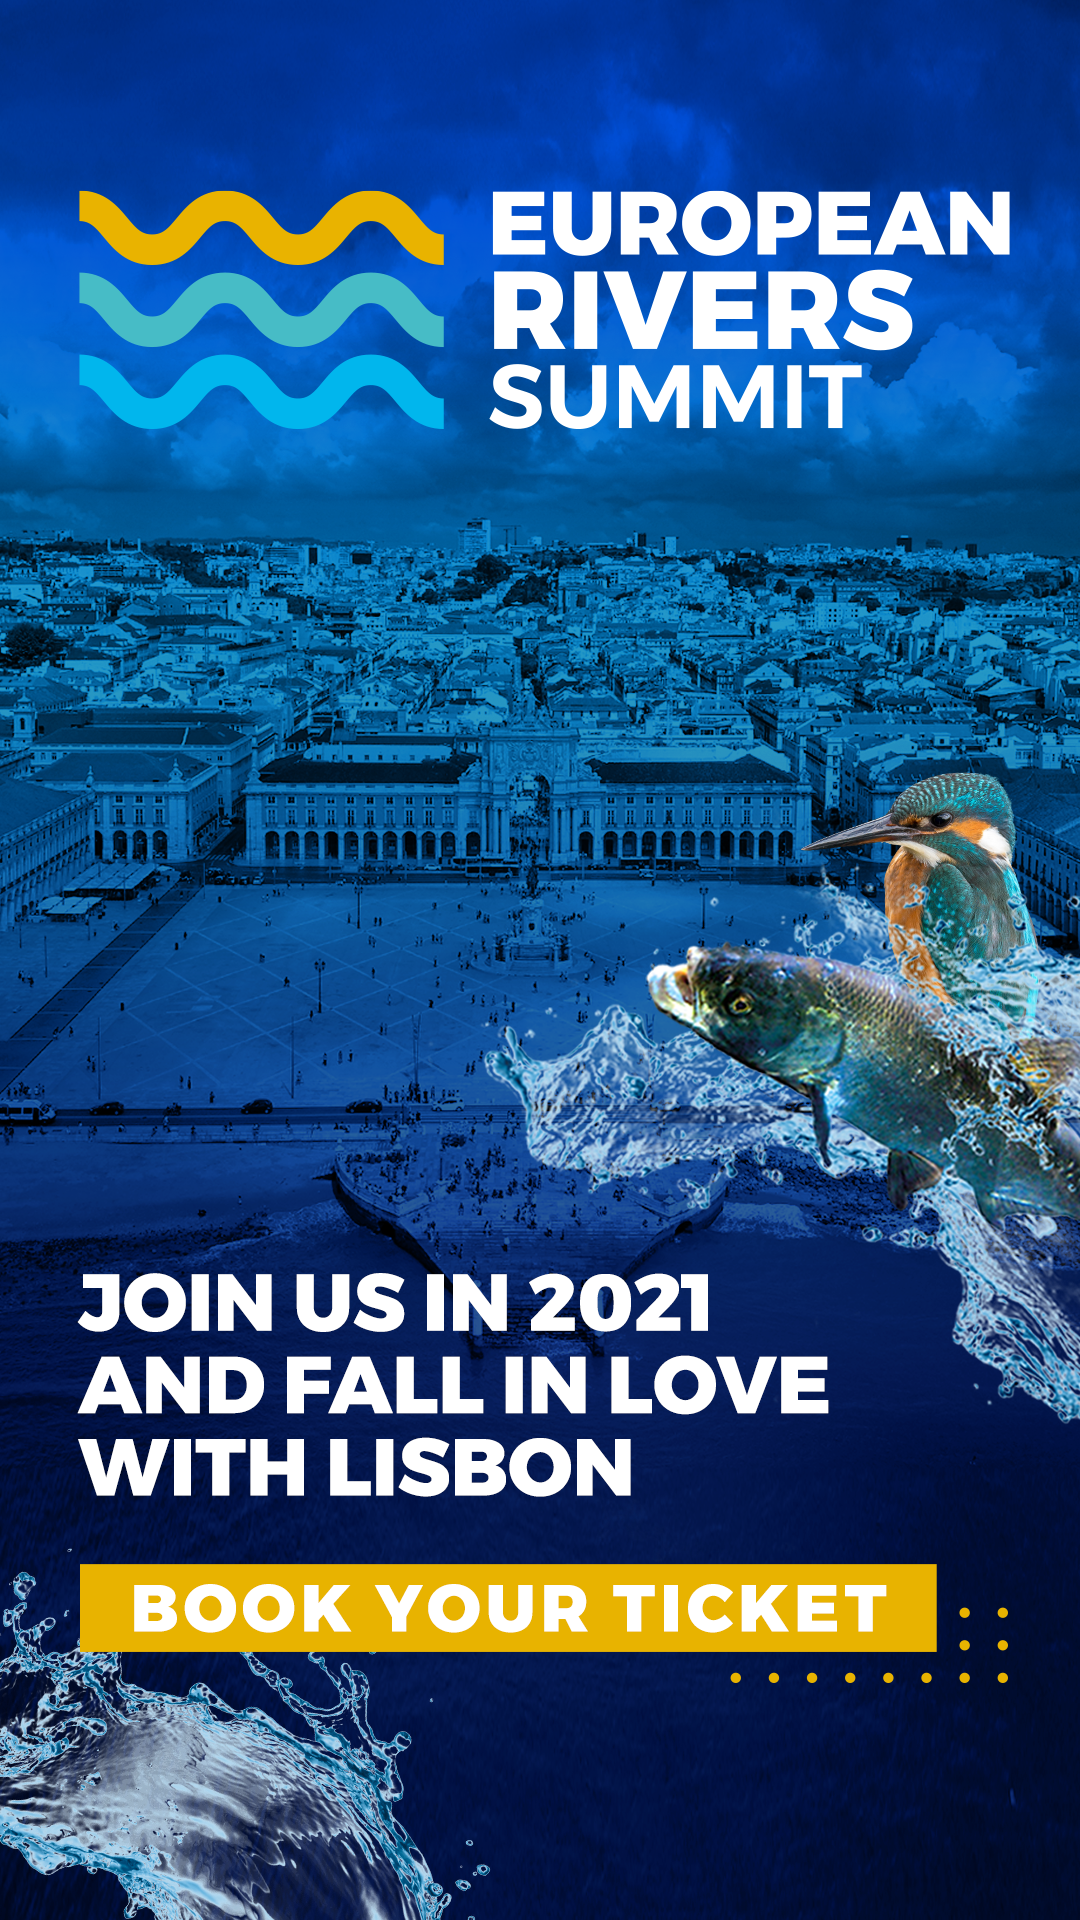 European Rivers Summit 2021 Social Media Story. Download our Media Kit to help us share the European Rivers Summit 2021 content on your social media and other platforms.